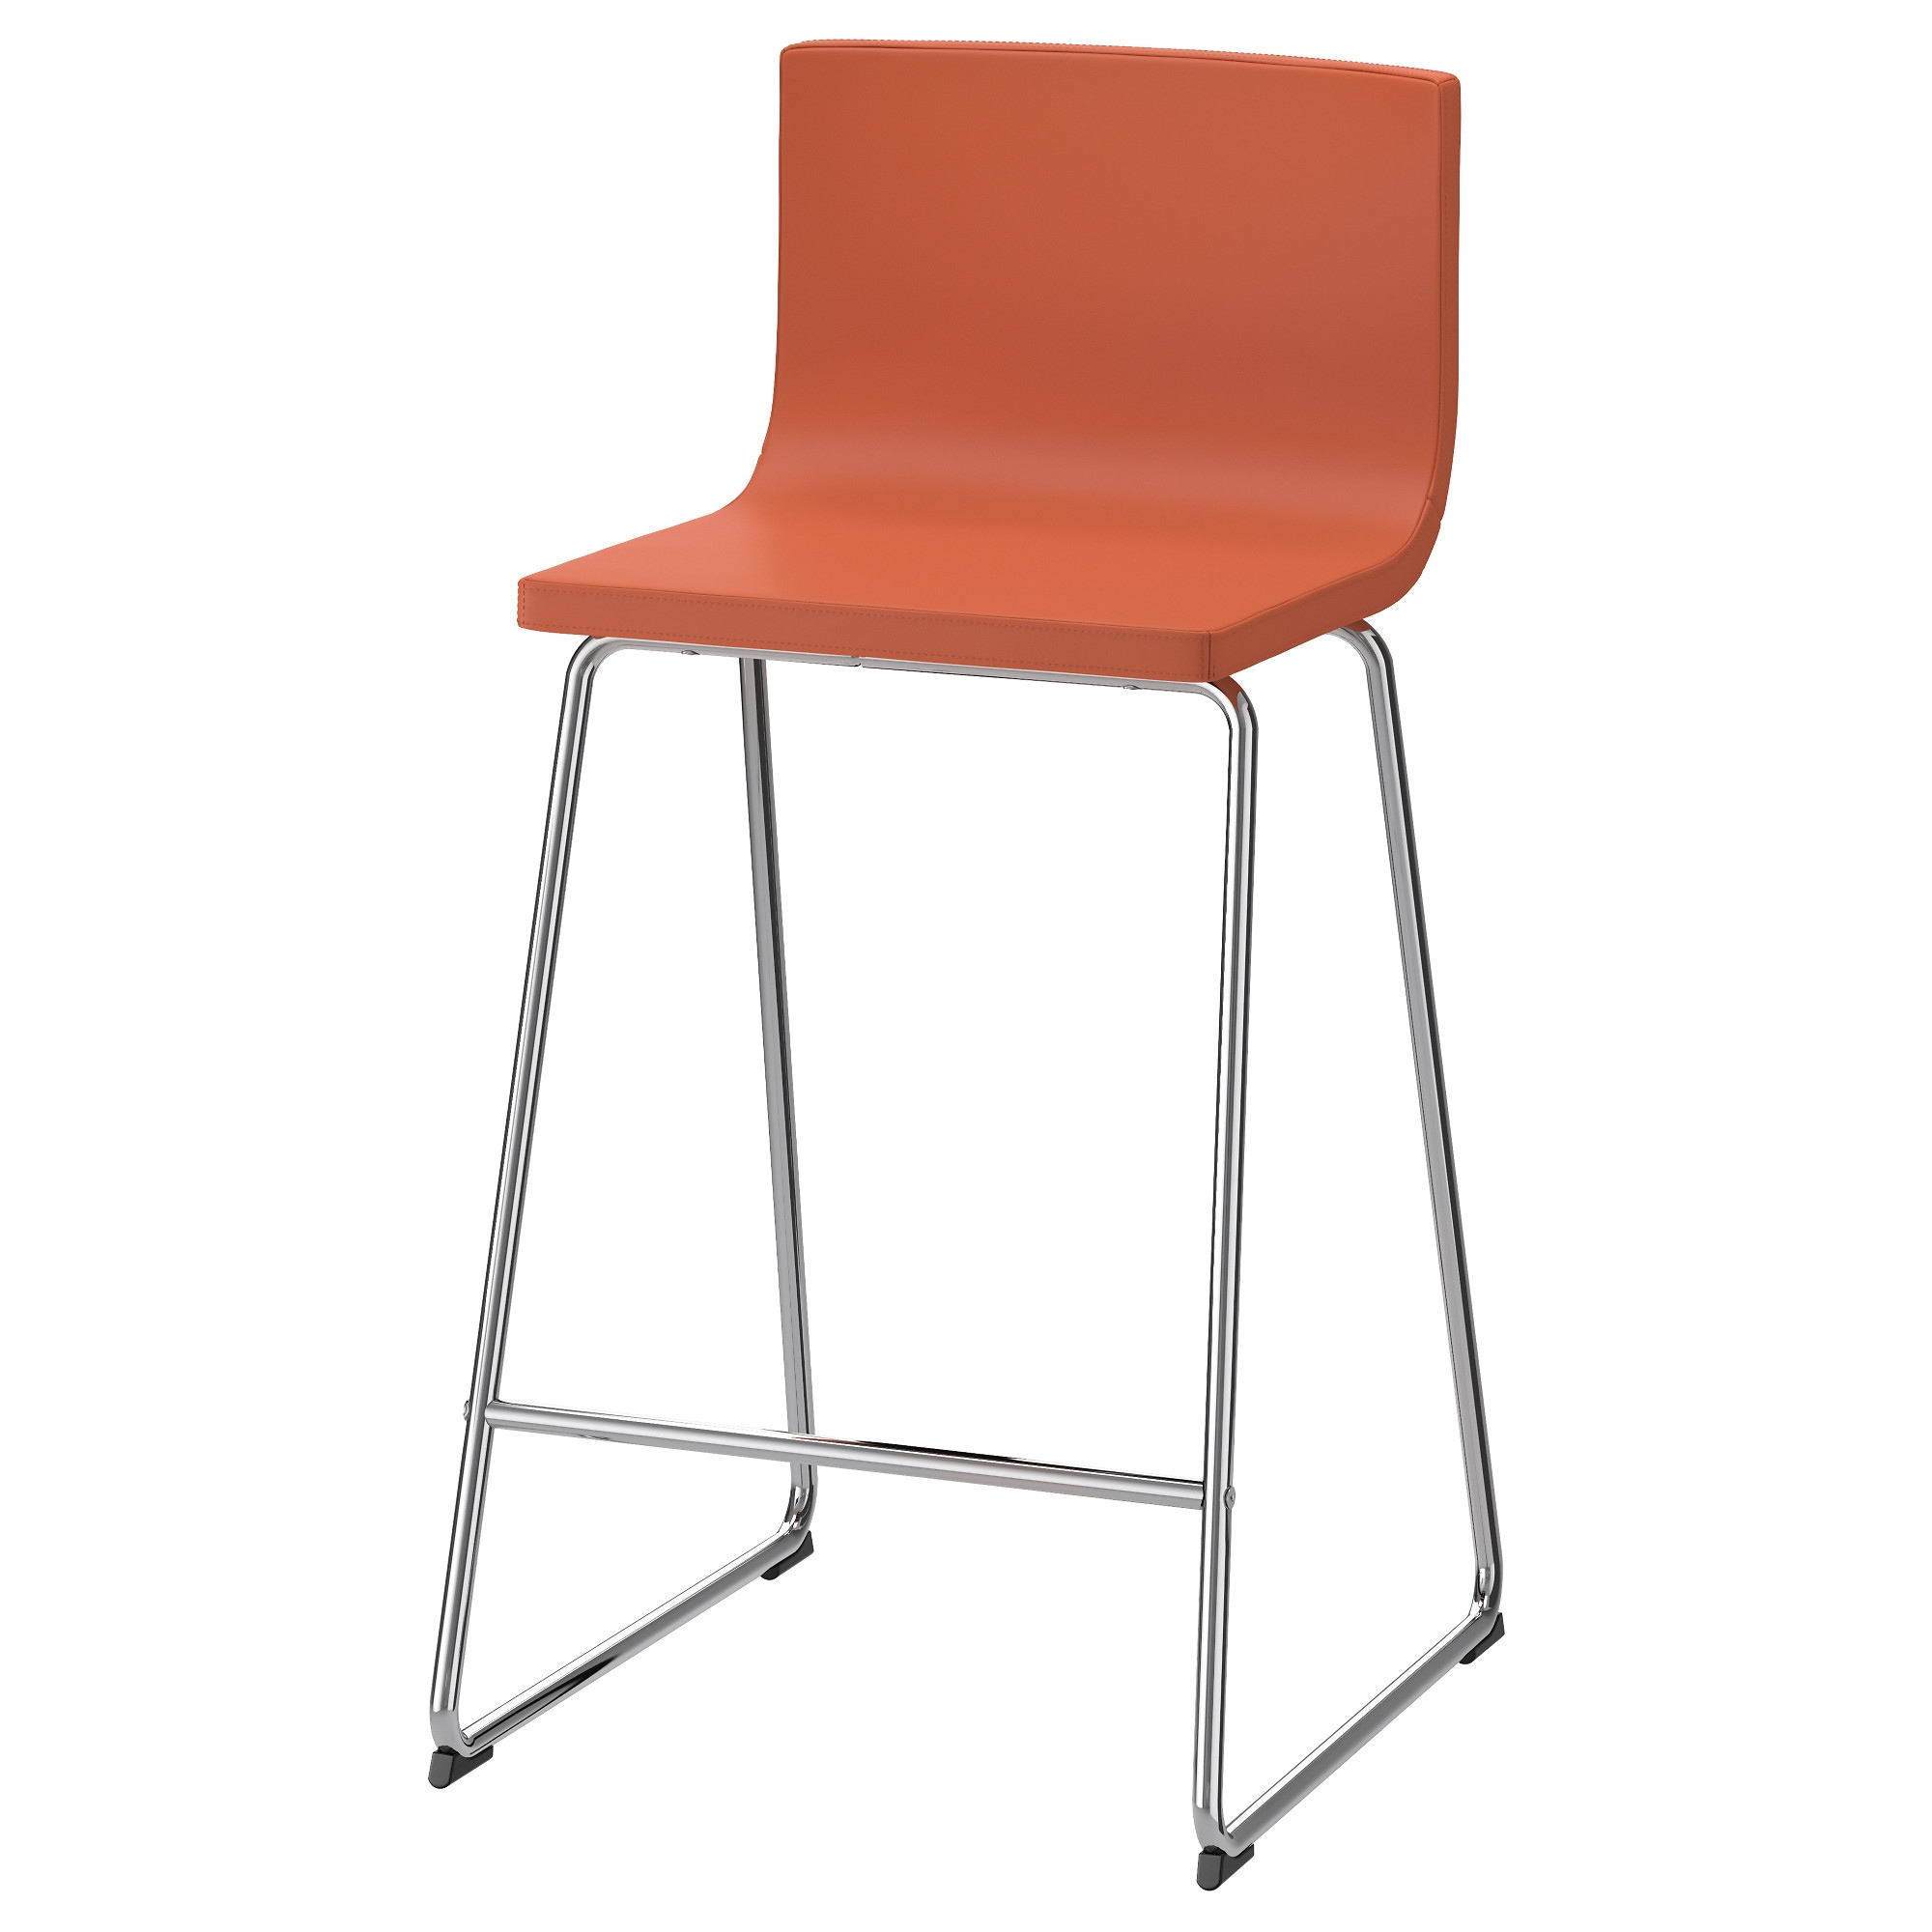 BERNHARD bar stool with backrest, chrome plated, Mjuk orange Tested for:  220 lb